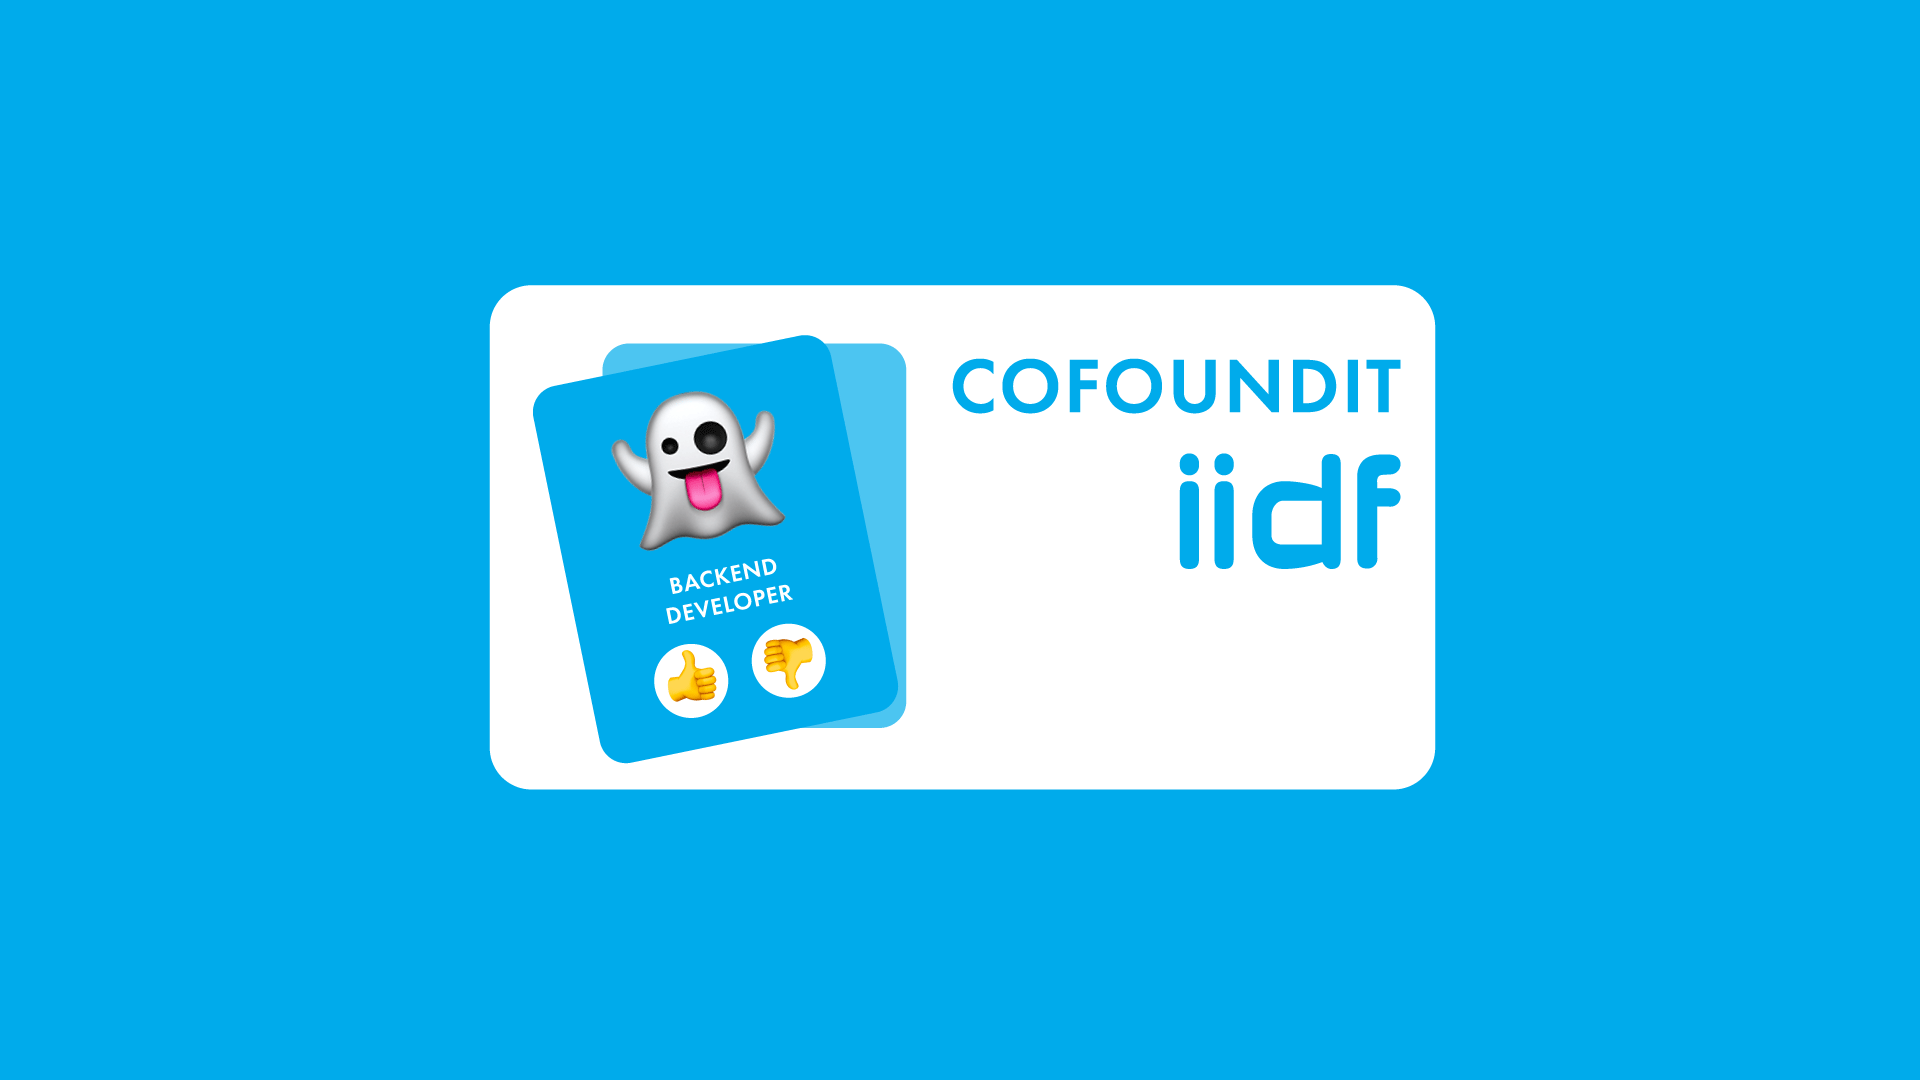 Launching Cofoundit, a Tinder-like service that matches startups and job seekers by Evrone